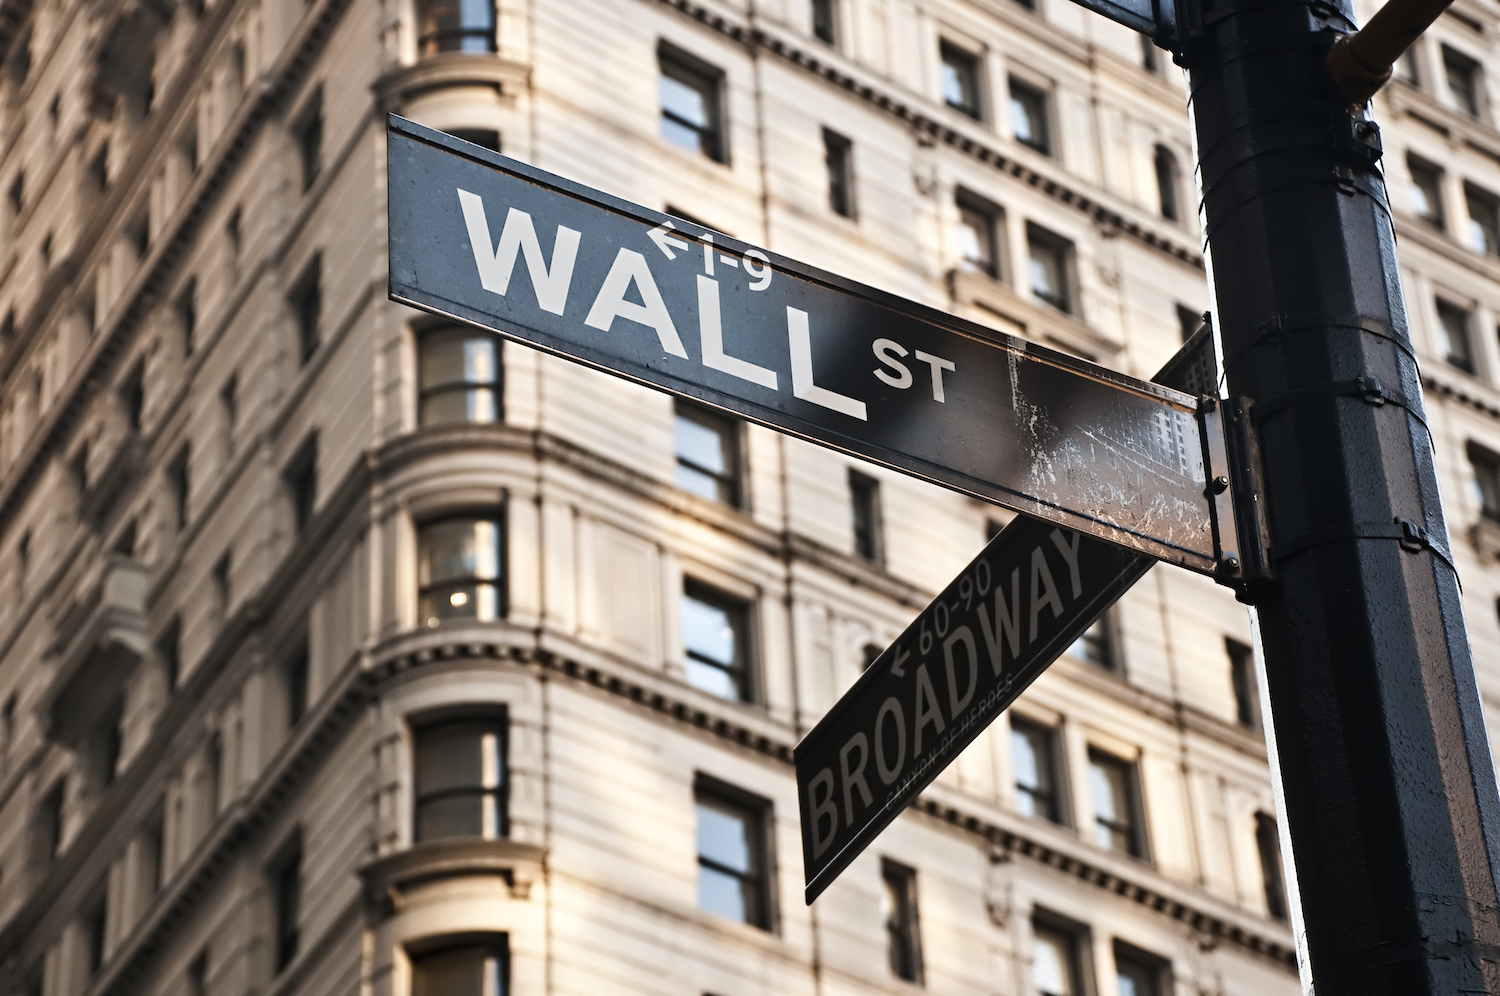 Wall Street Bank CEOs to Mention Crypto Before Congressional Banking Panels This Week